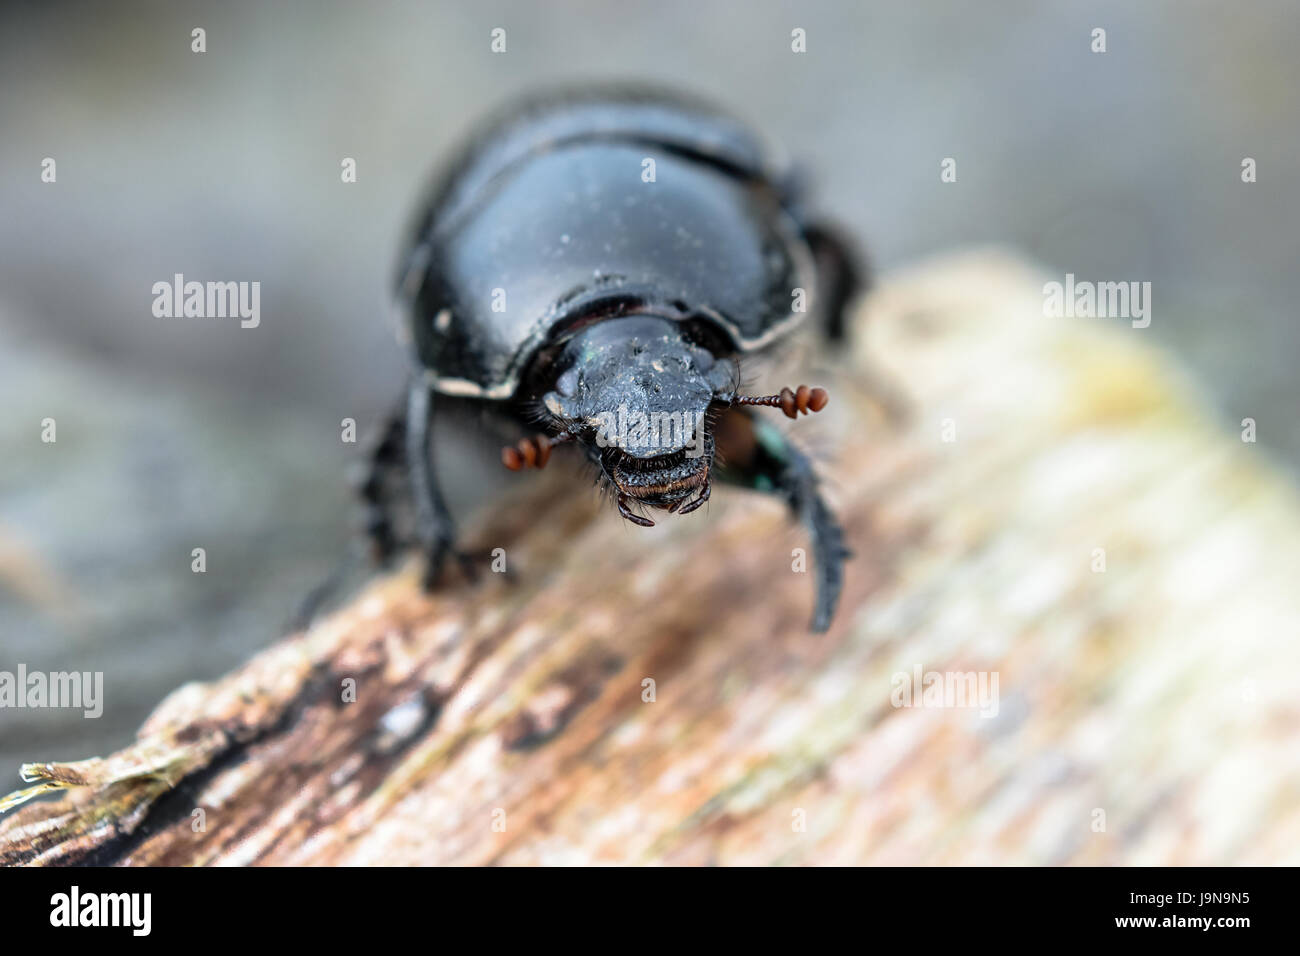 Close-up of the Dor Beetle / Dumbledore Dung Beetle - Stock Image